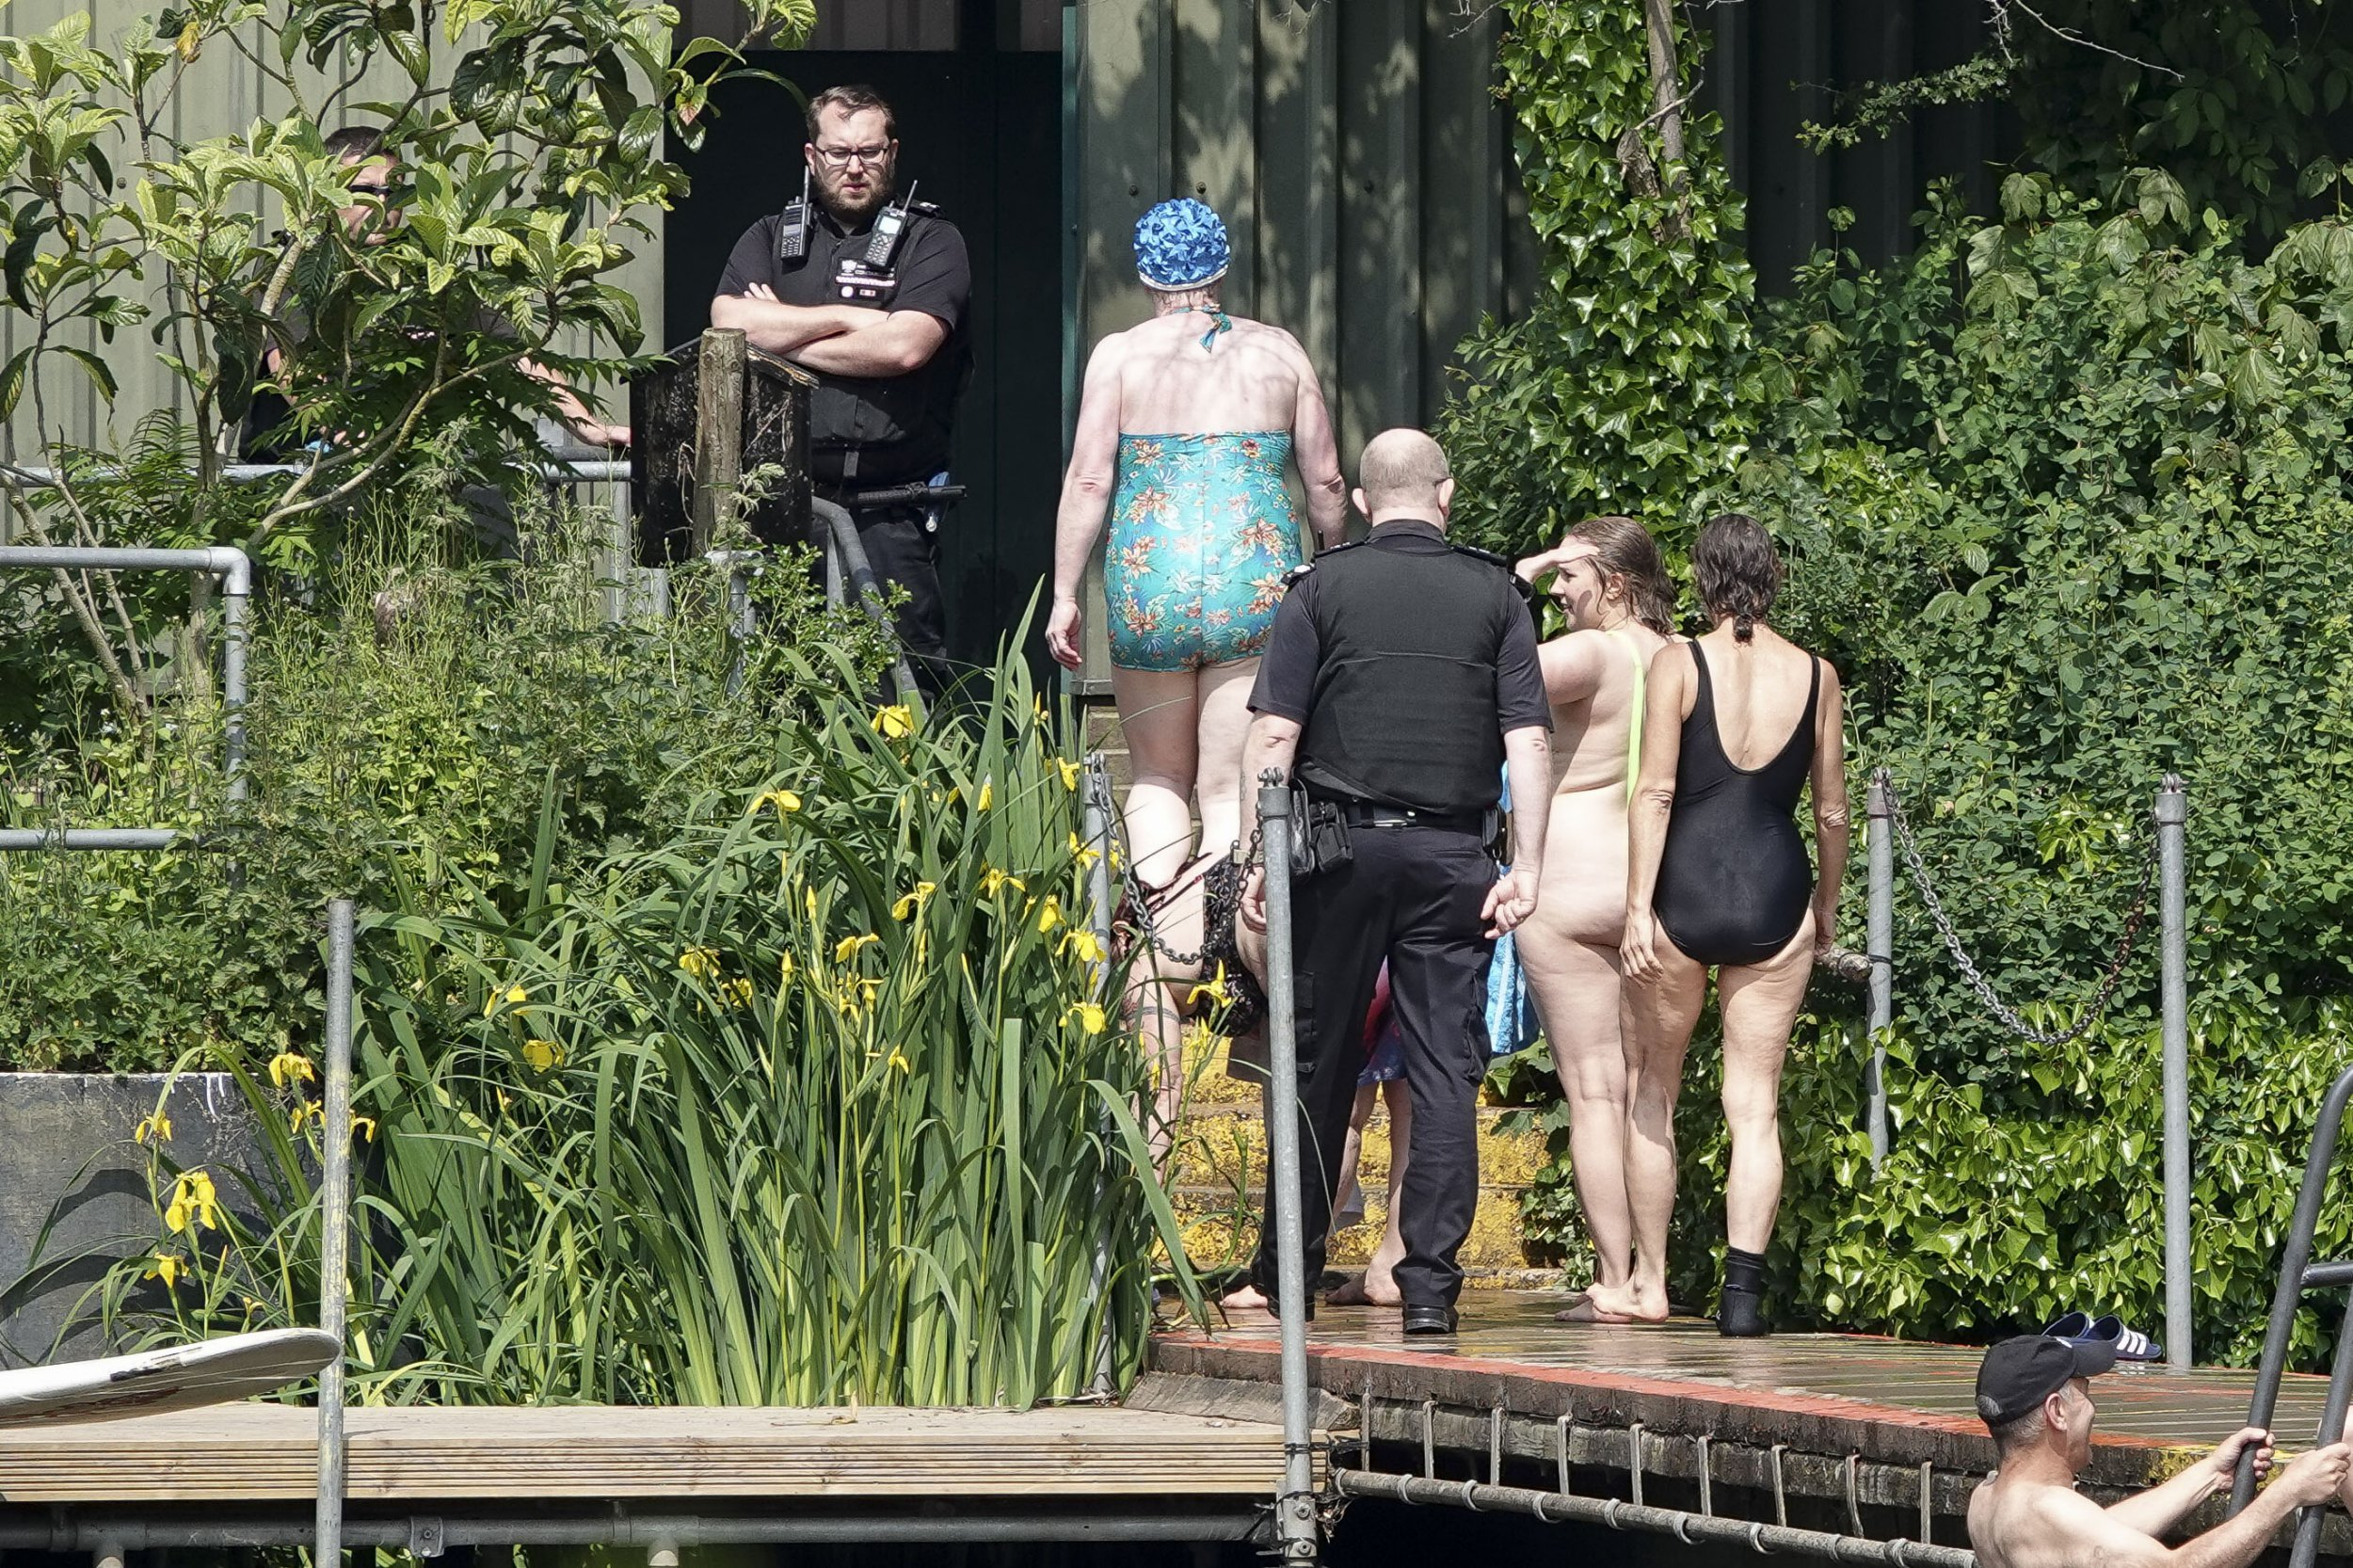 "Members of ""Man Friday"" disrupt the men only bathing session at Hampstead Heath Pools in a protest over the gender fluid situation rule imposed on the Women only pool nearby. Police arrive at the pools, after which they decided to not take any action. Please legal."